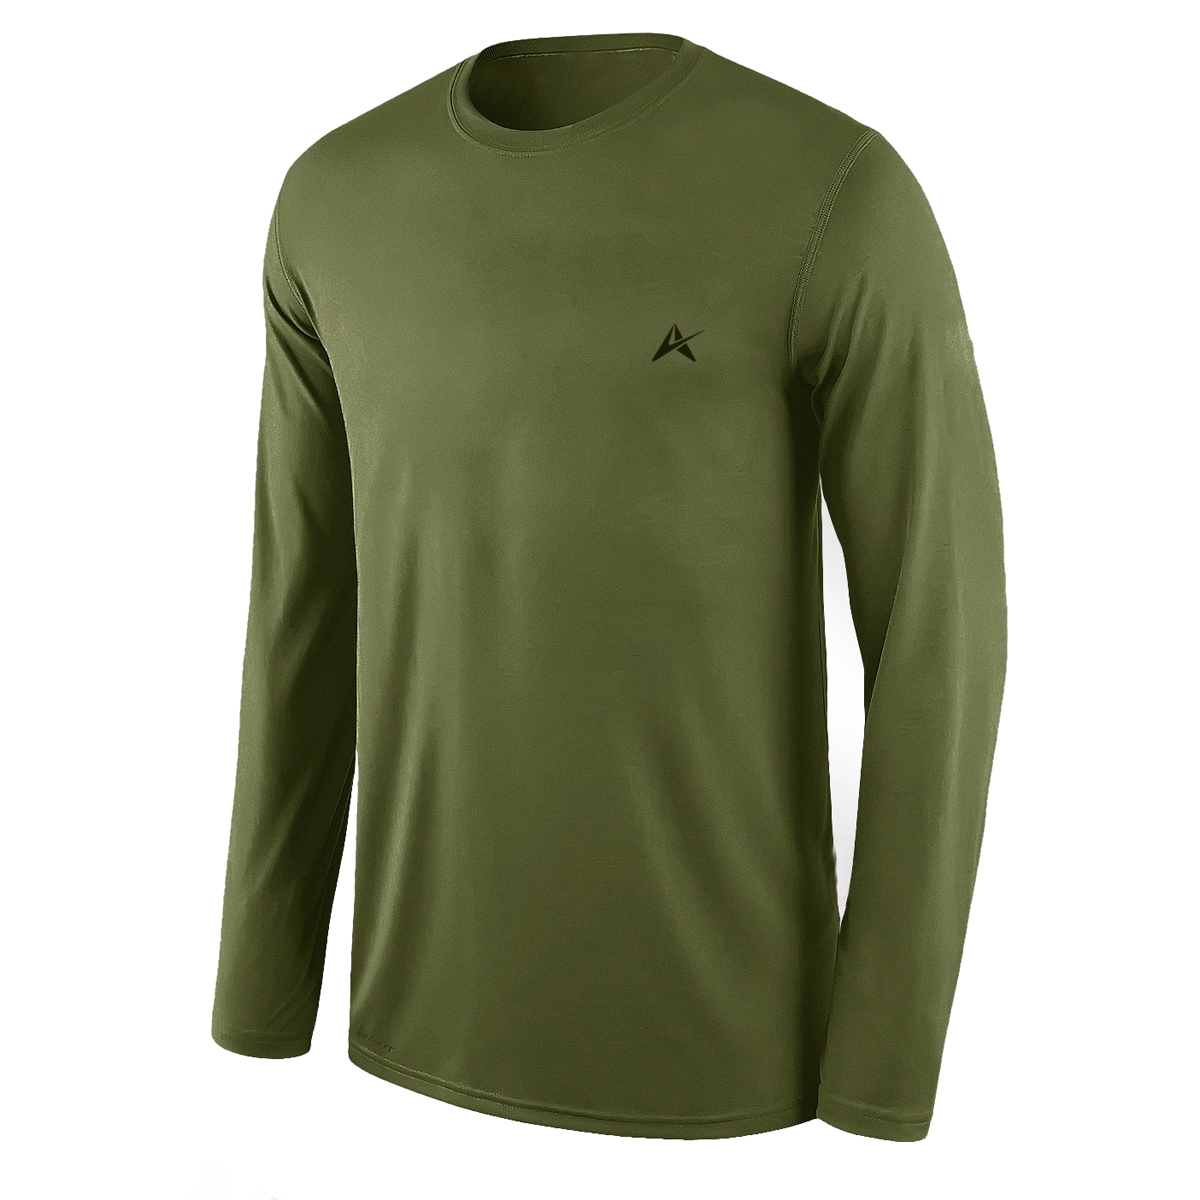 Men's Full Sleeve Classic-Fit Performance Cotton T-Shirt AI-007